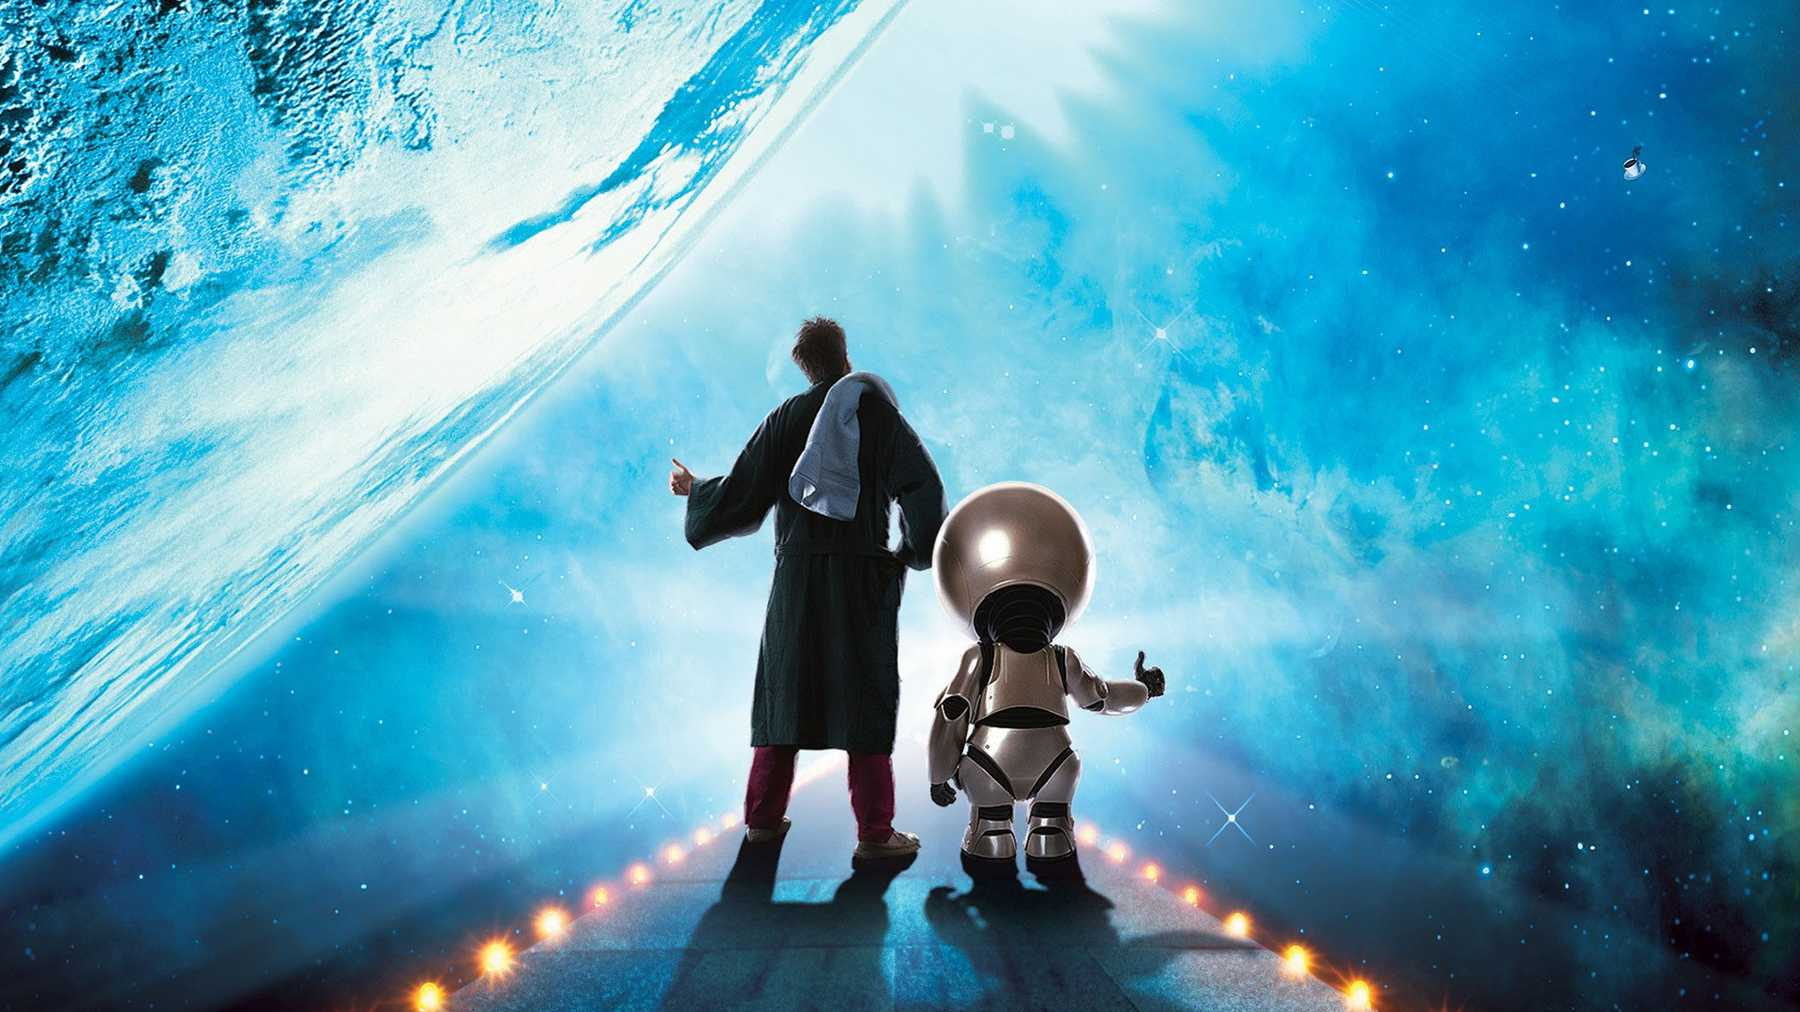 The Hitchhiker's Guide to the Galaxy TV series is coming to Hulu 9